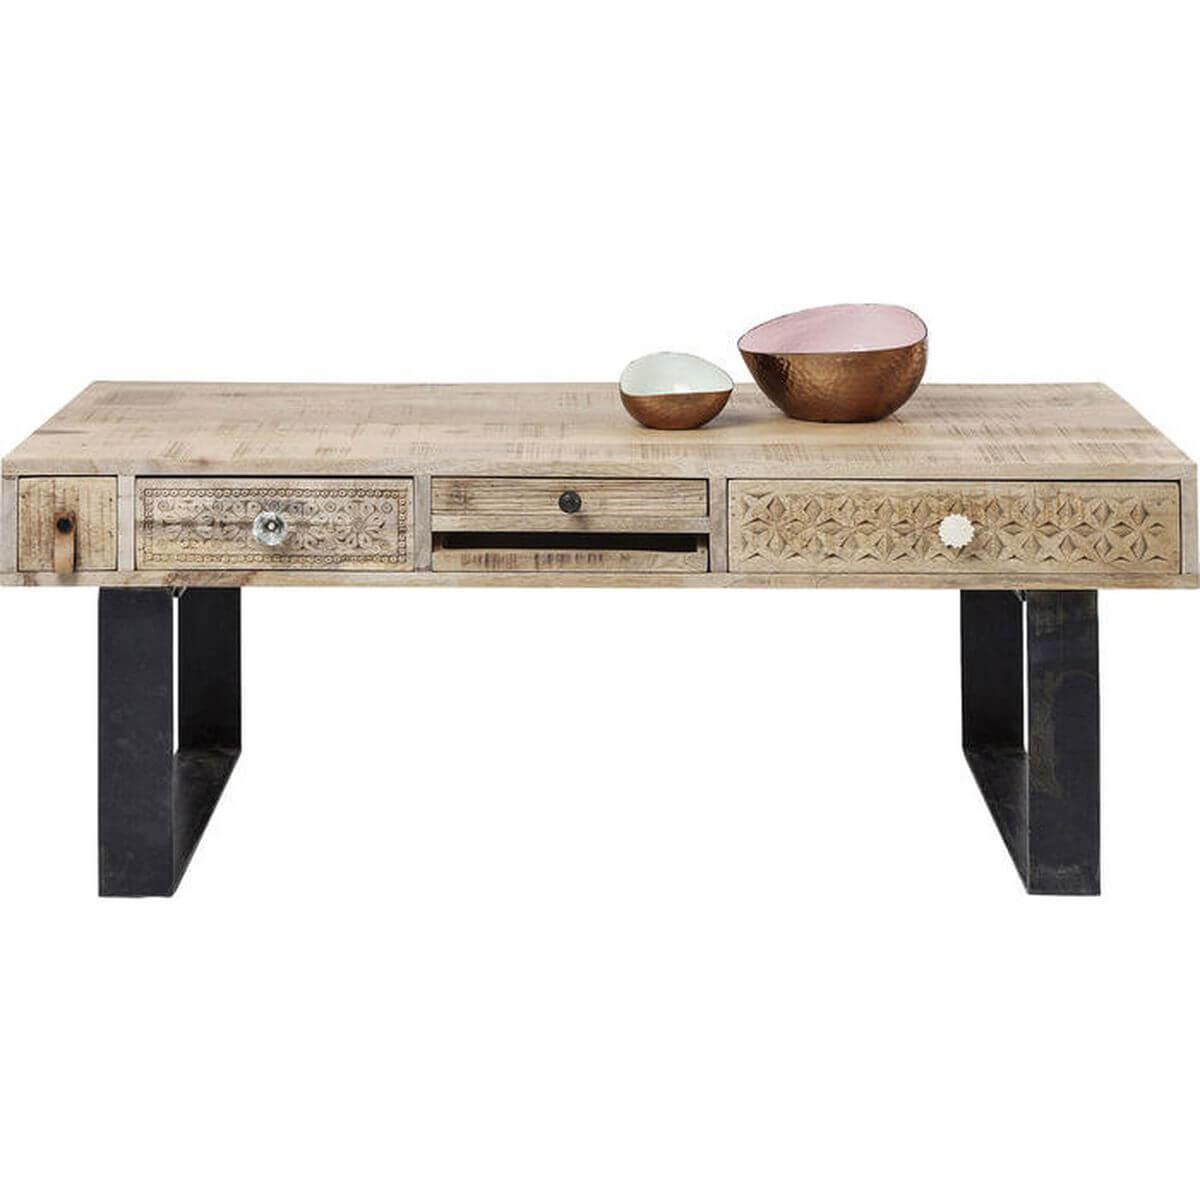 Table basse Puro Kare Design 120x60cm